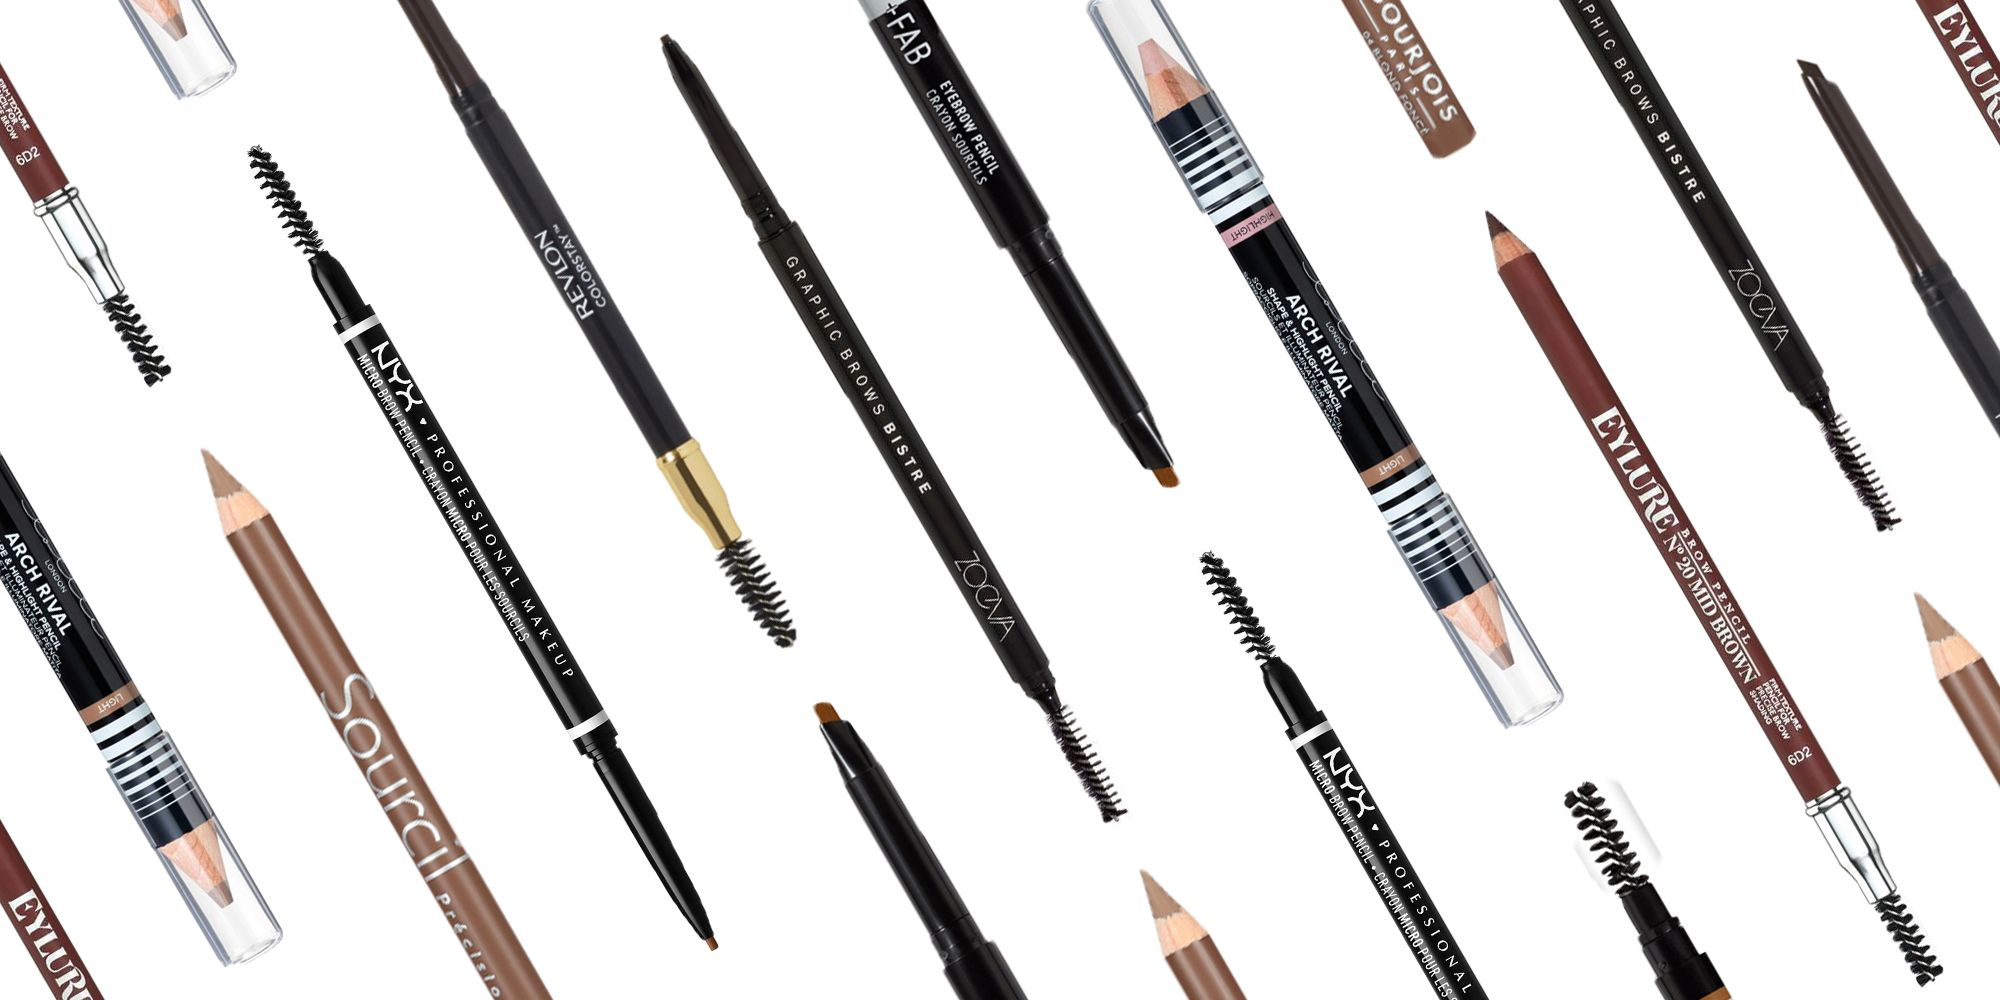 Eyebrow Pencil 11 Of The Best Eyebrow Pencils Under 10